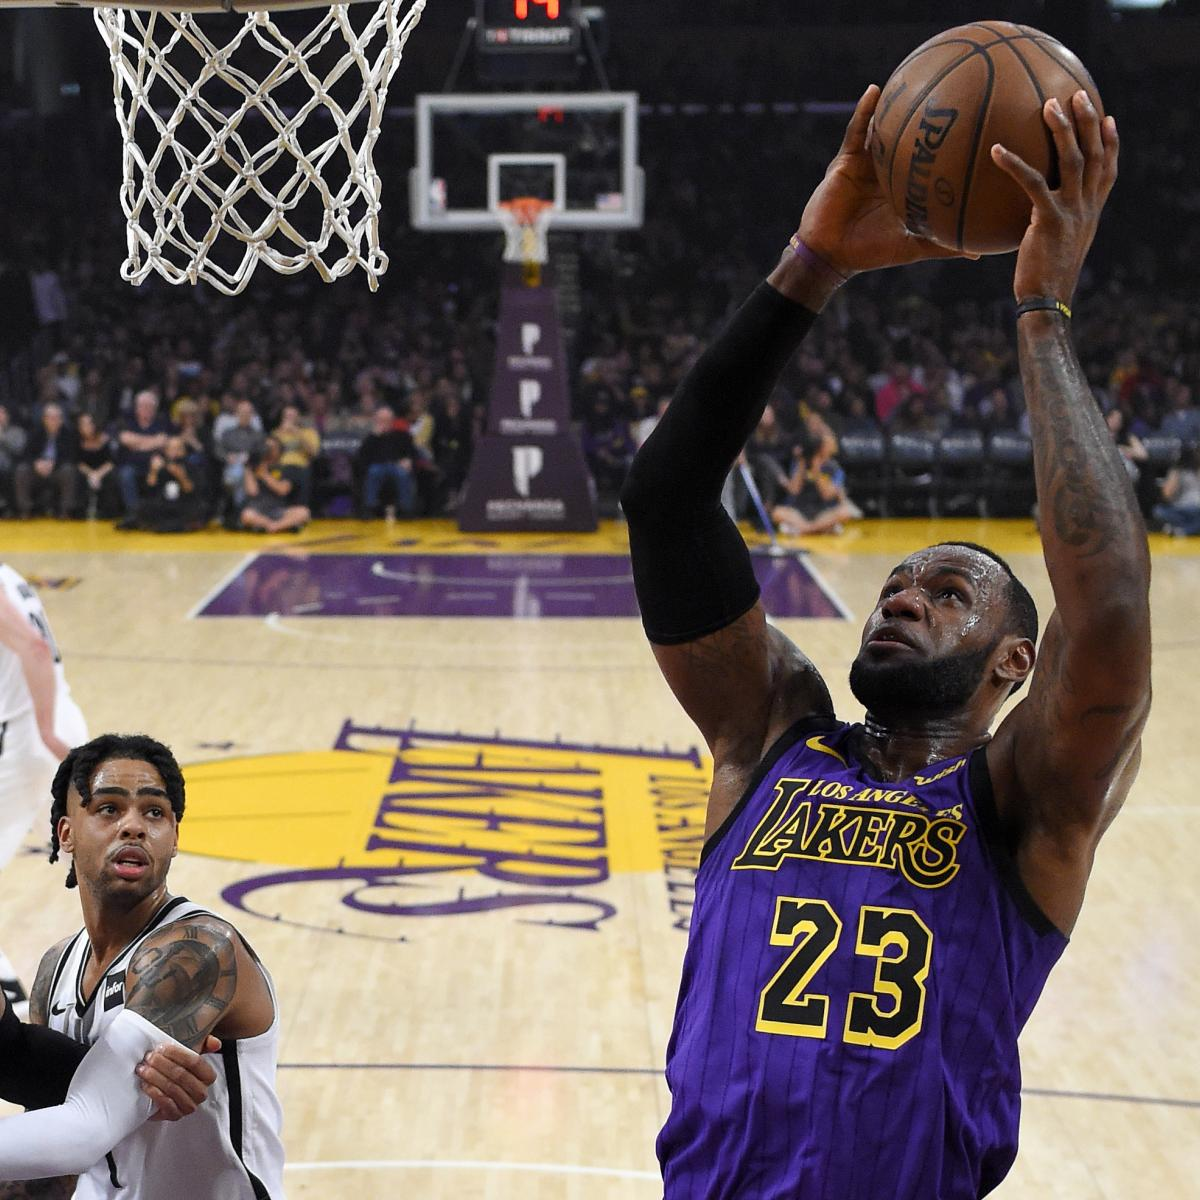 2019-20 NBA Title Odds: LeBron James, Lakers Favored After